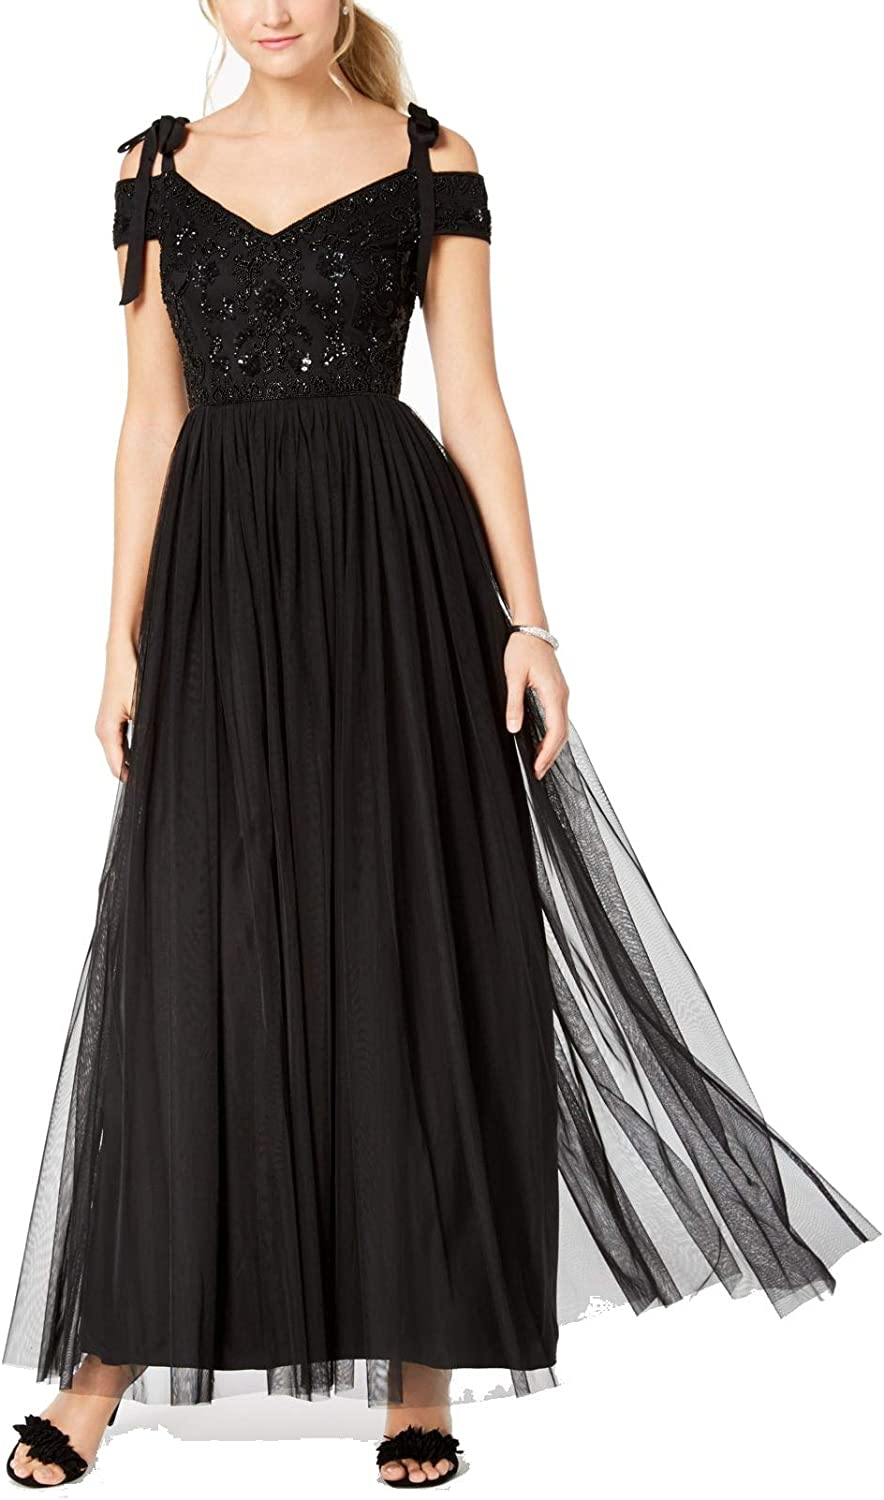 Adrianna Papell Women's Long Beaded Dress with Off The Shoulder Sleeves and Ties